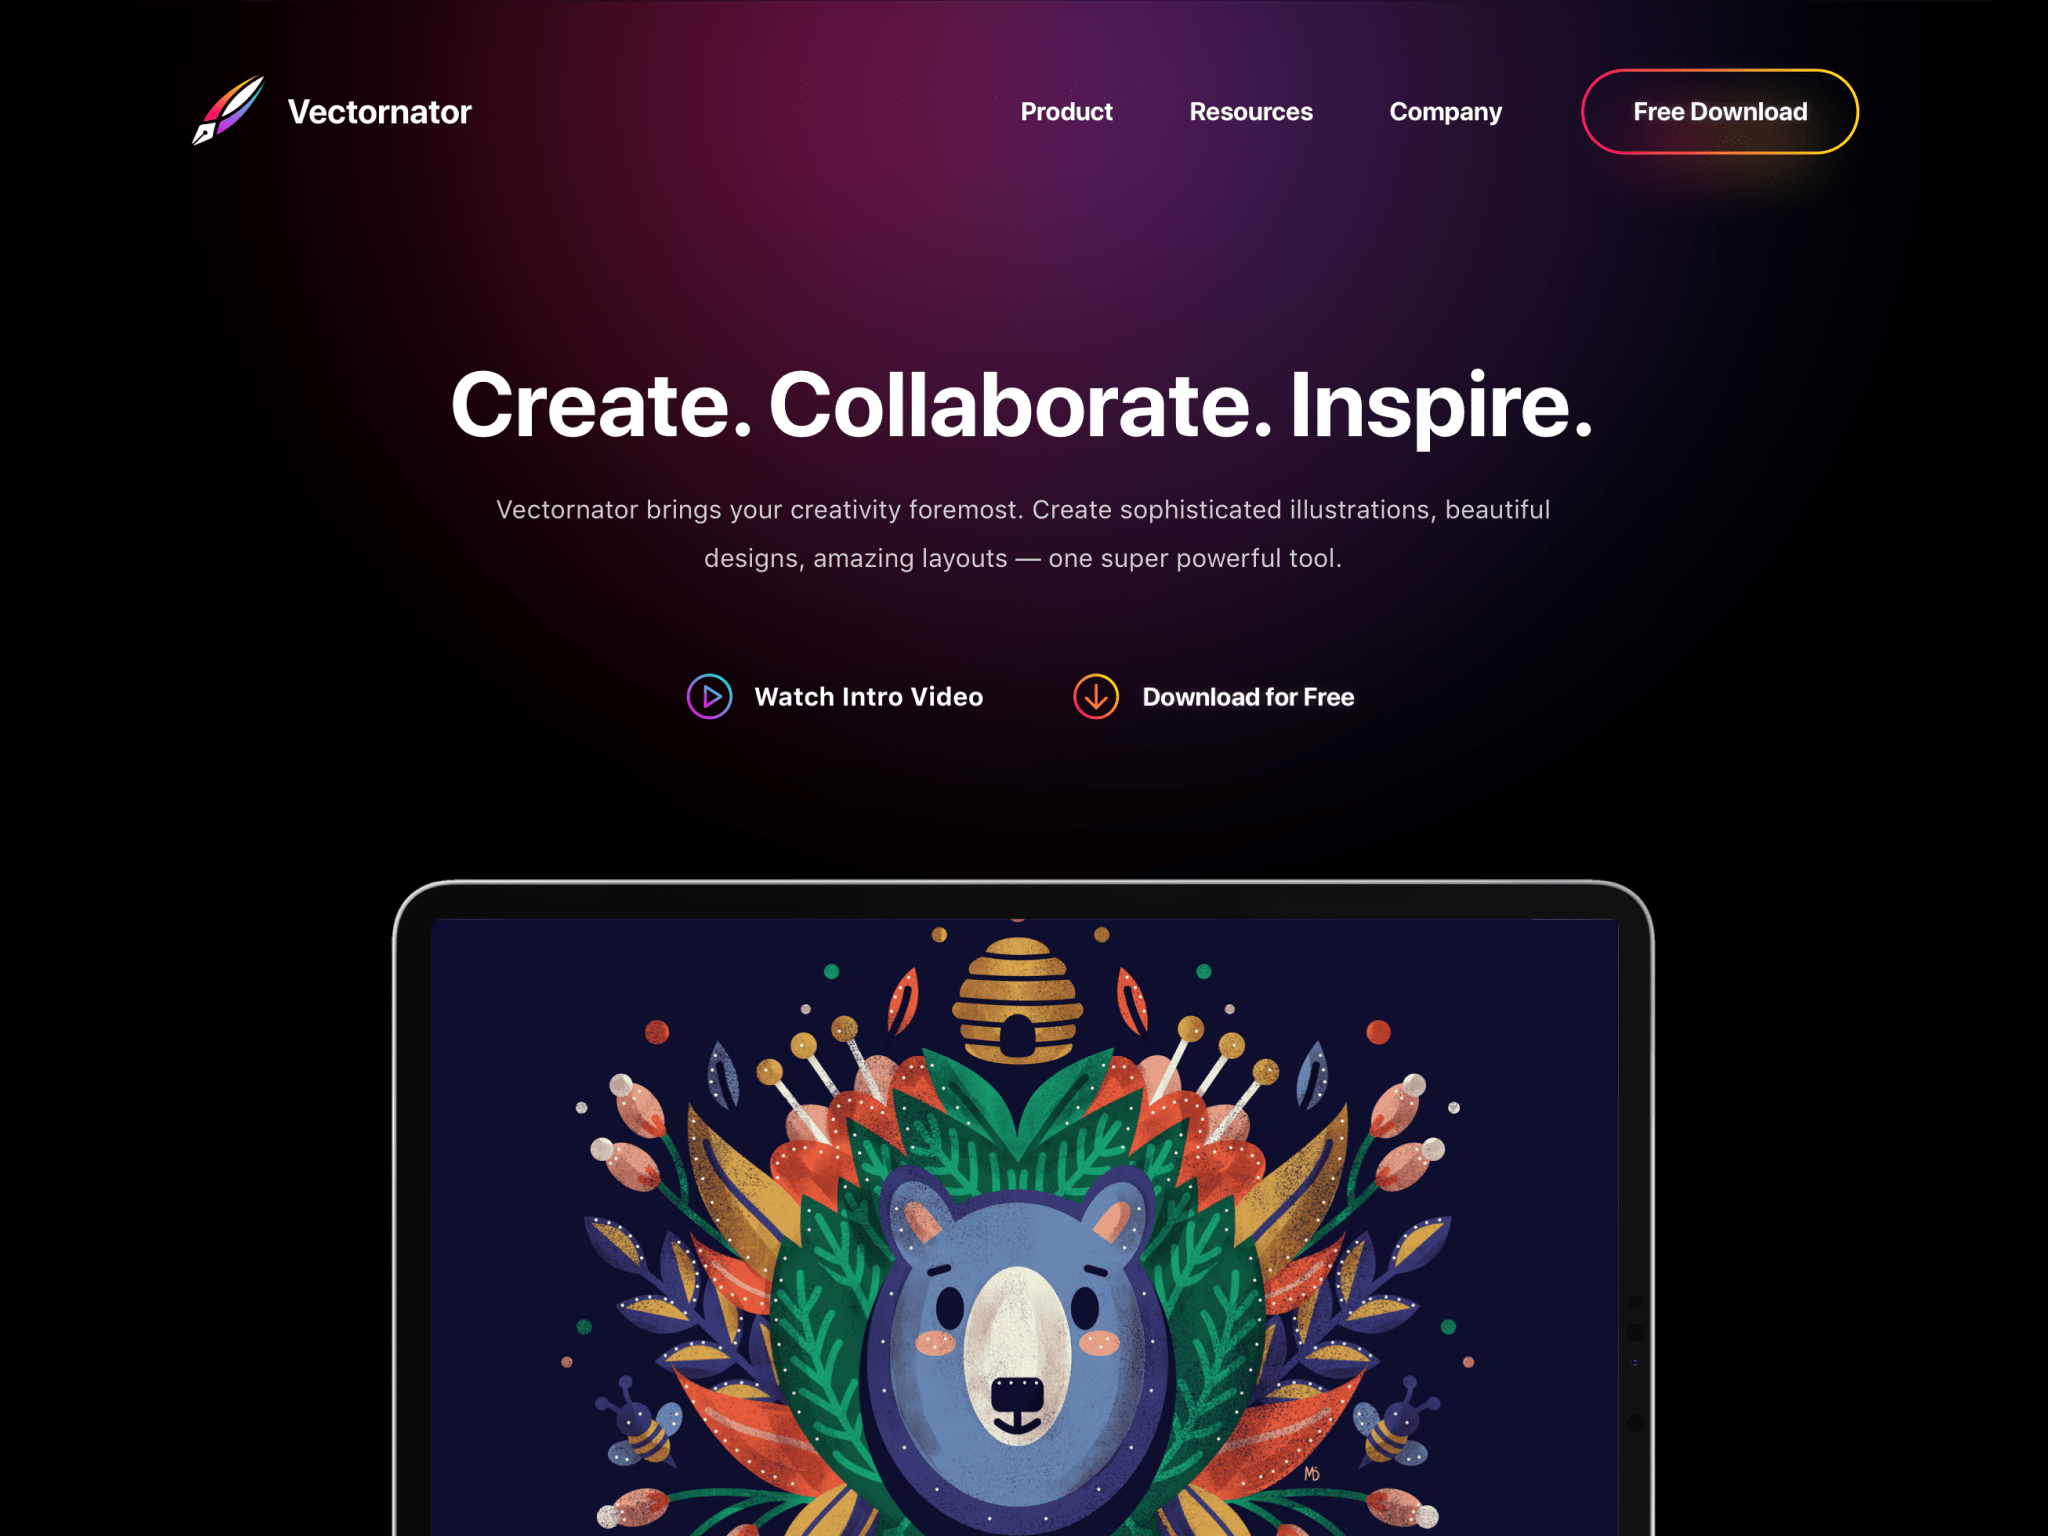 LIFT Agency designed and built vectornator's new website using Webflow and a lot of love. LIFT agency designed the user interface for 5 Million Designers